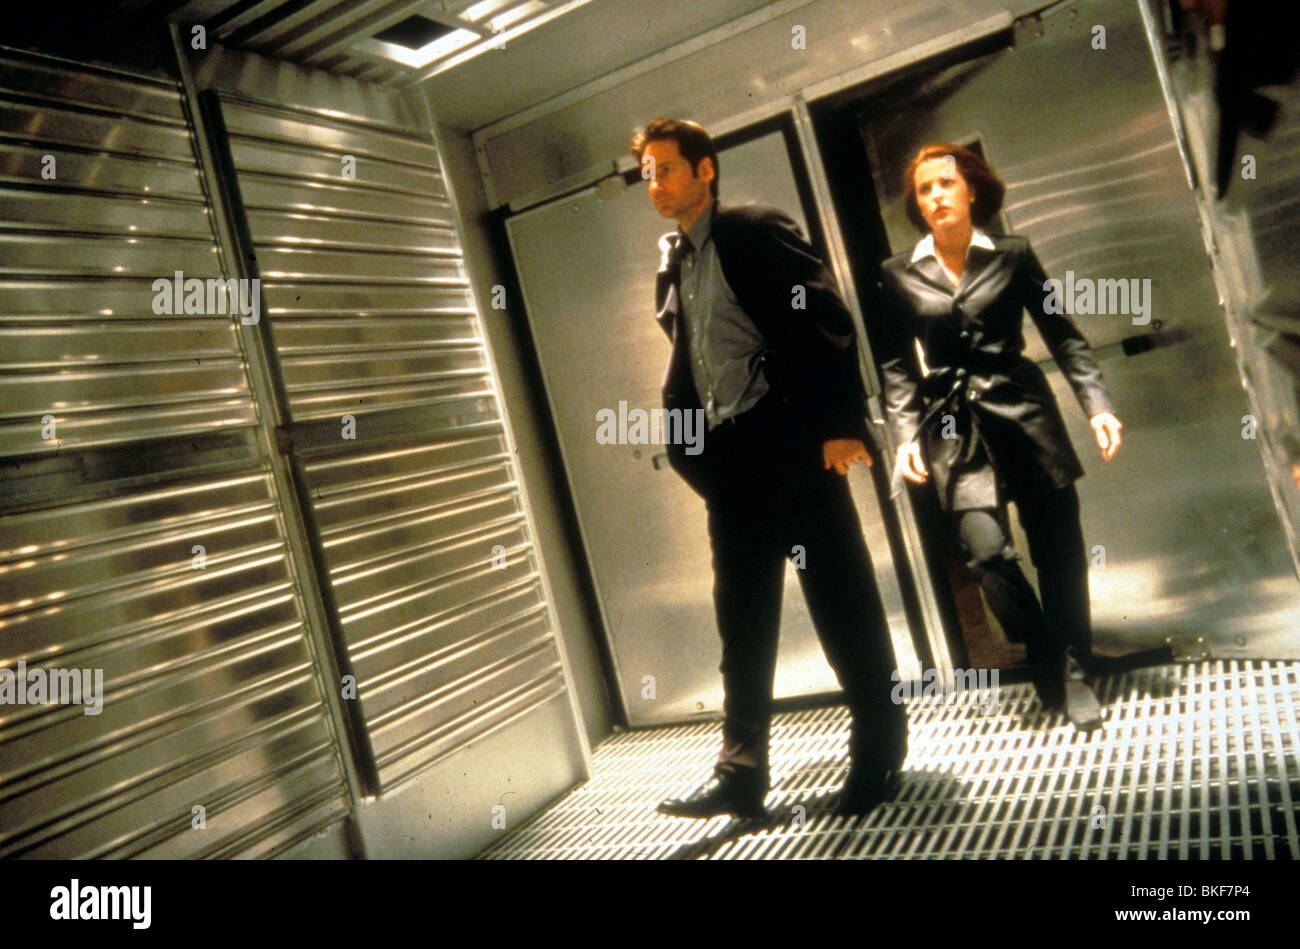 X-FILES: THE MOVIE (1998) DAVID DUCHOVNY, GILLIAN ANDERSON XFM 037 - Stock Image